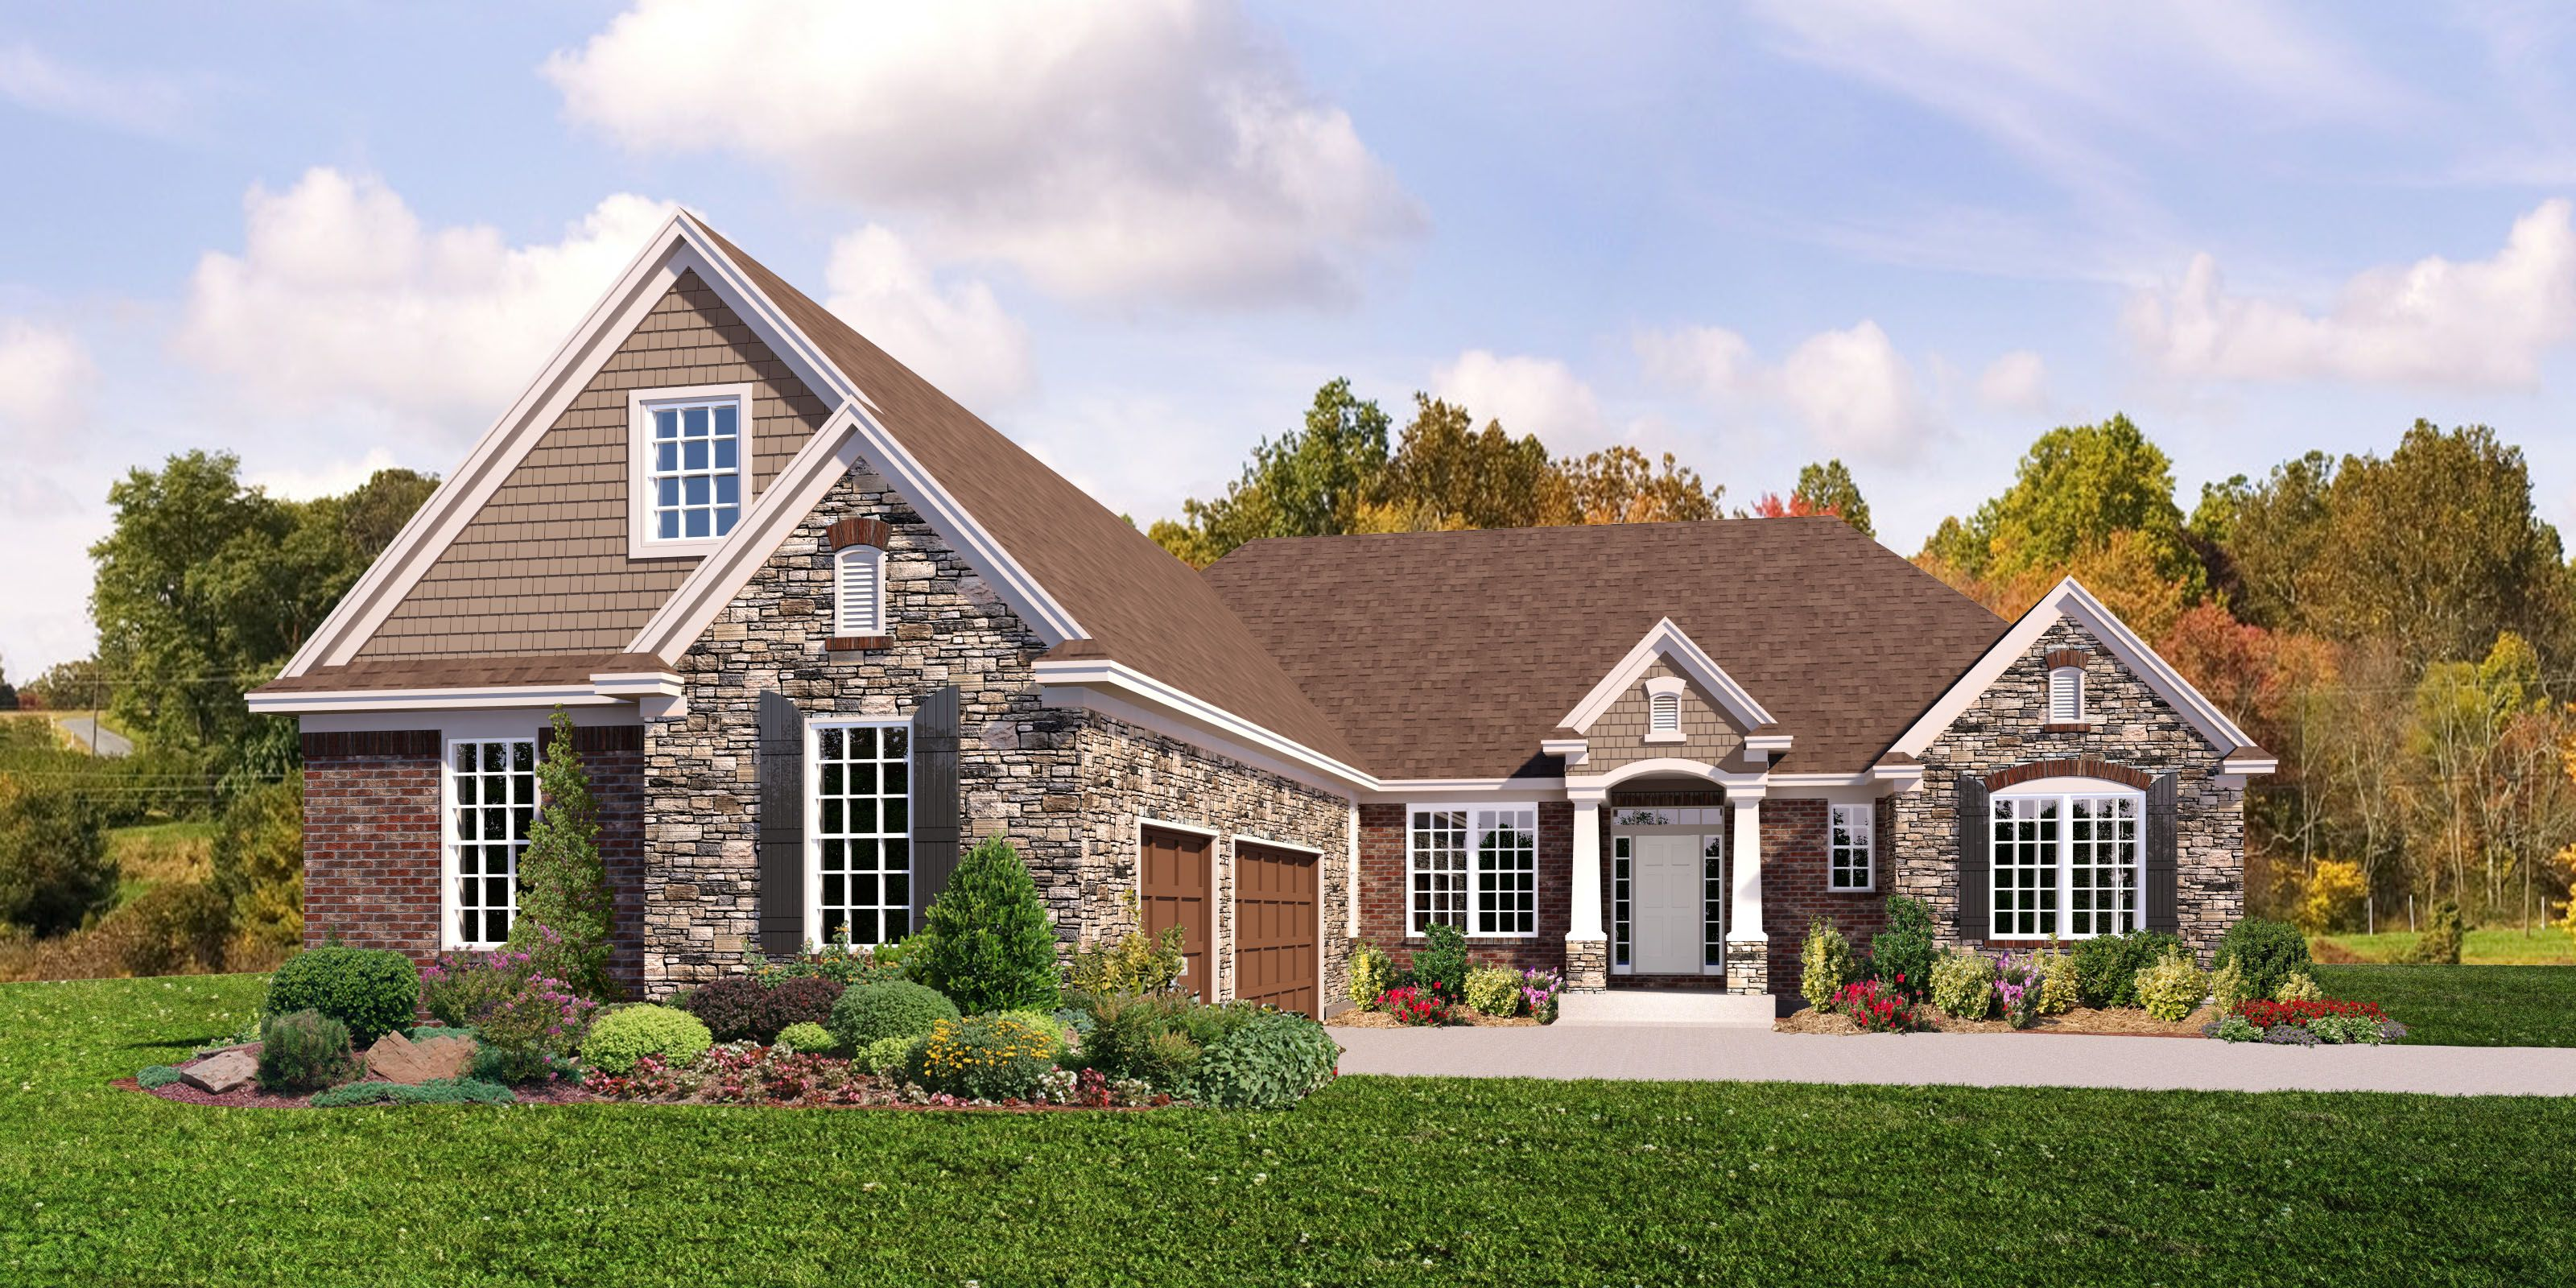 new homes in washington township oh view 1 137 homes